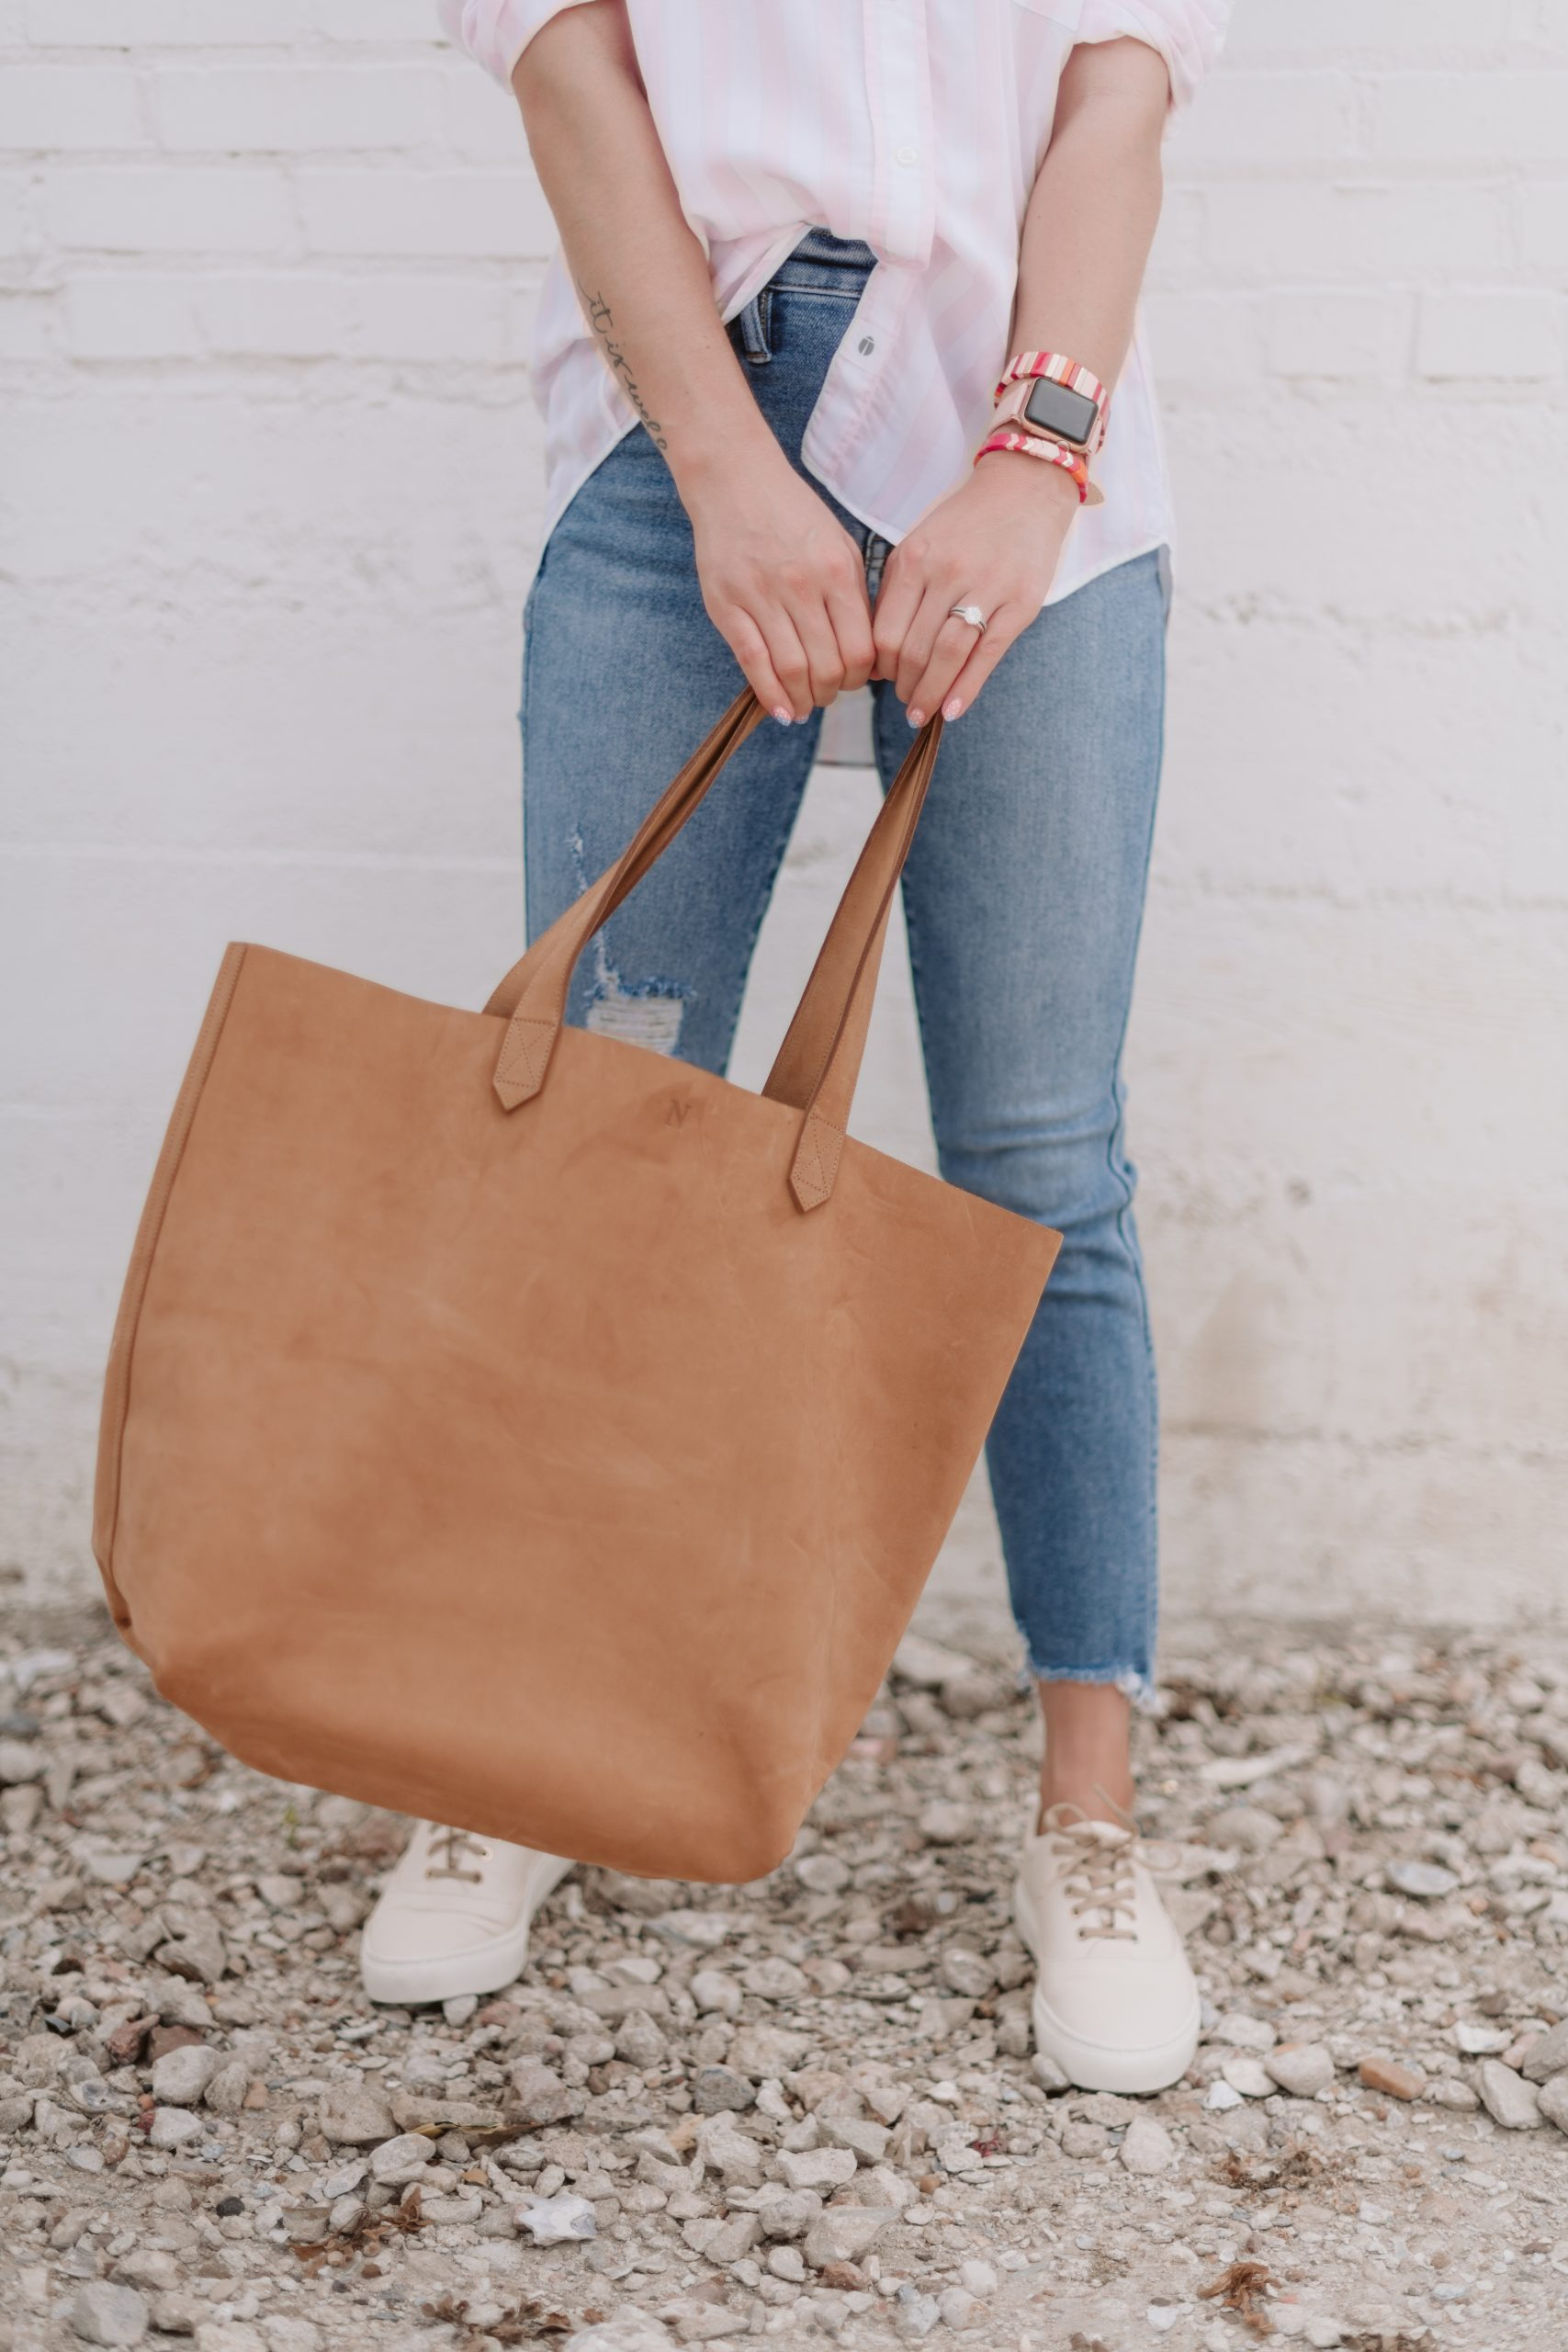 Houston fashion blogger Elly Brown wears Nisolo sneakers and Nisolo leather tote